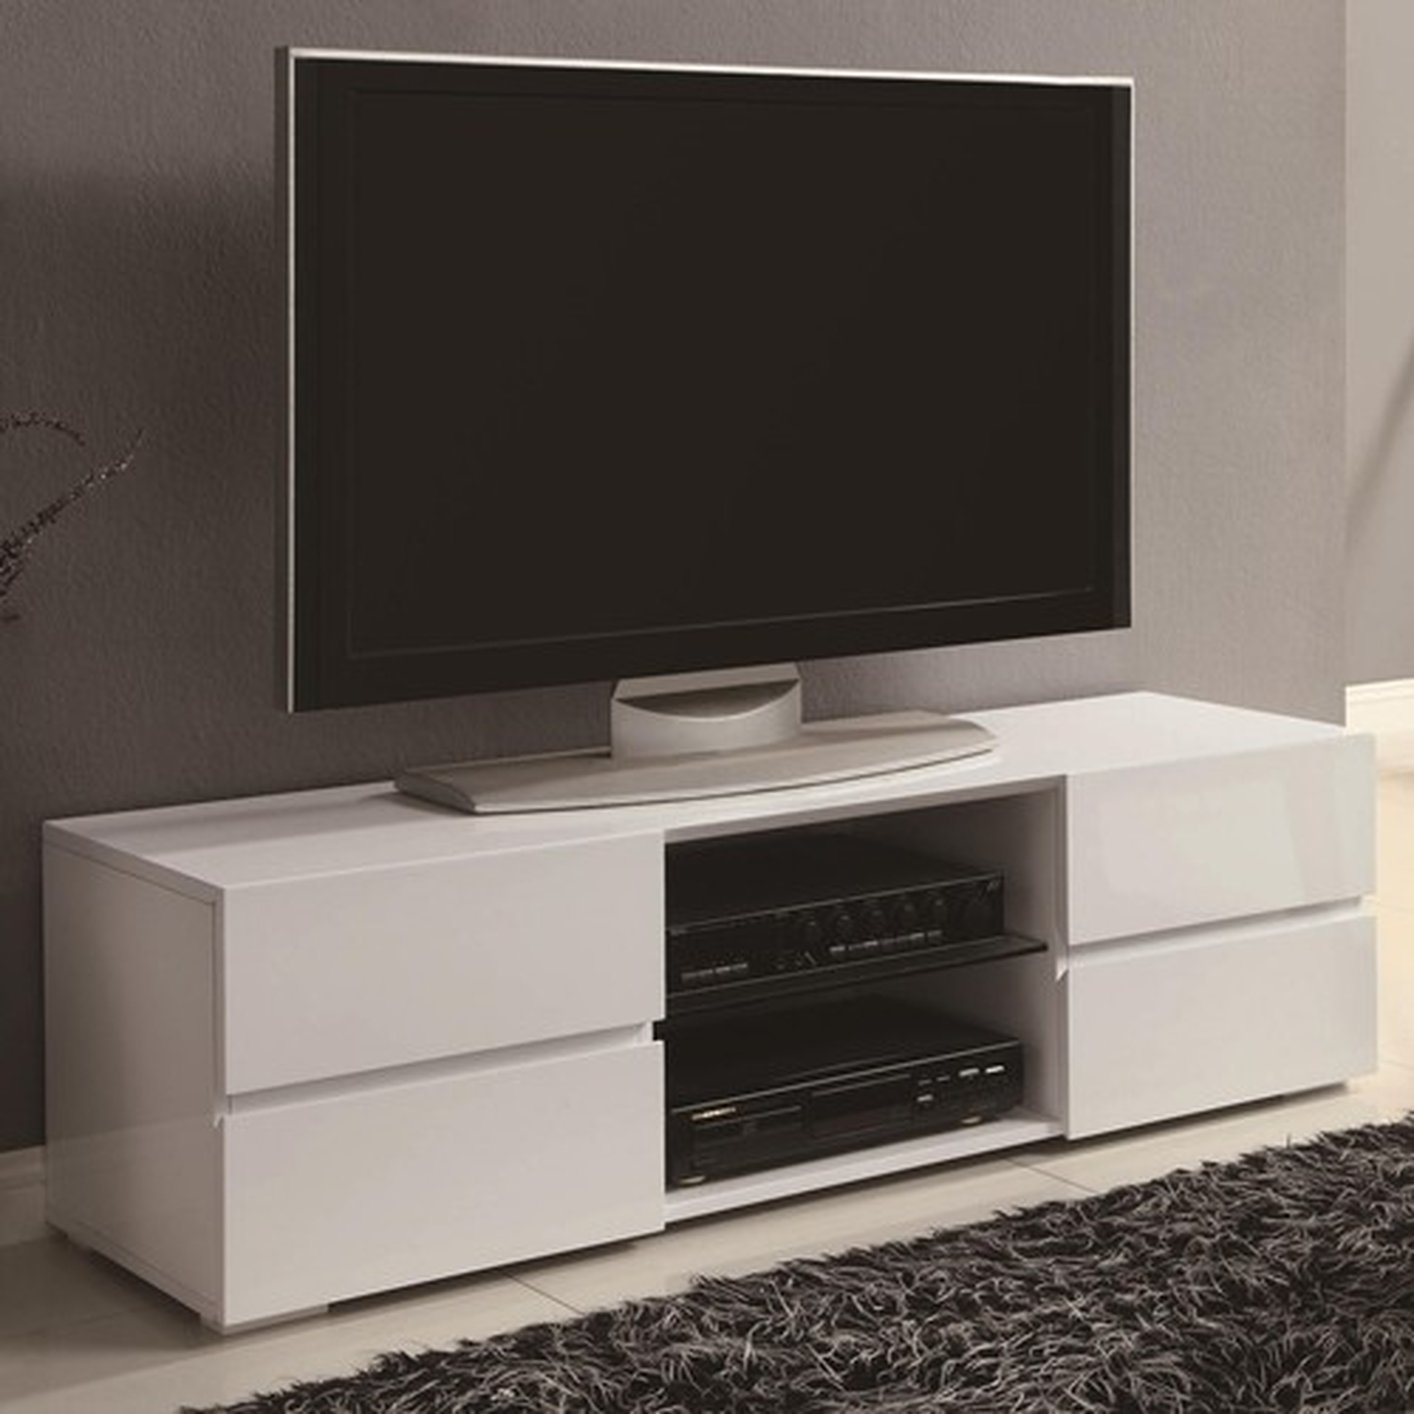 Stunning Centers Uamp Tv Stands Stealasofa Furniture Outlet With Wood Tv  Stand.